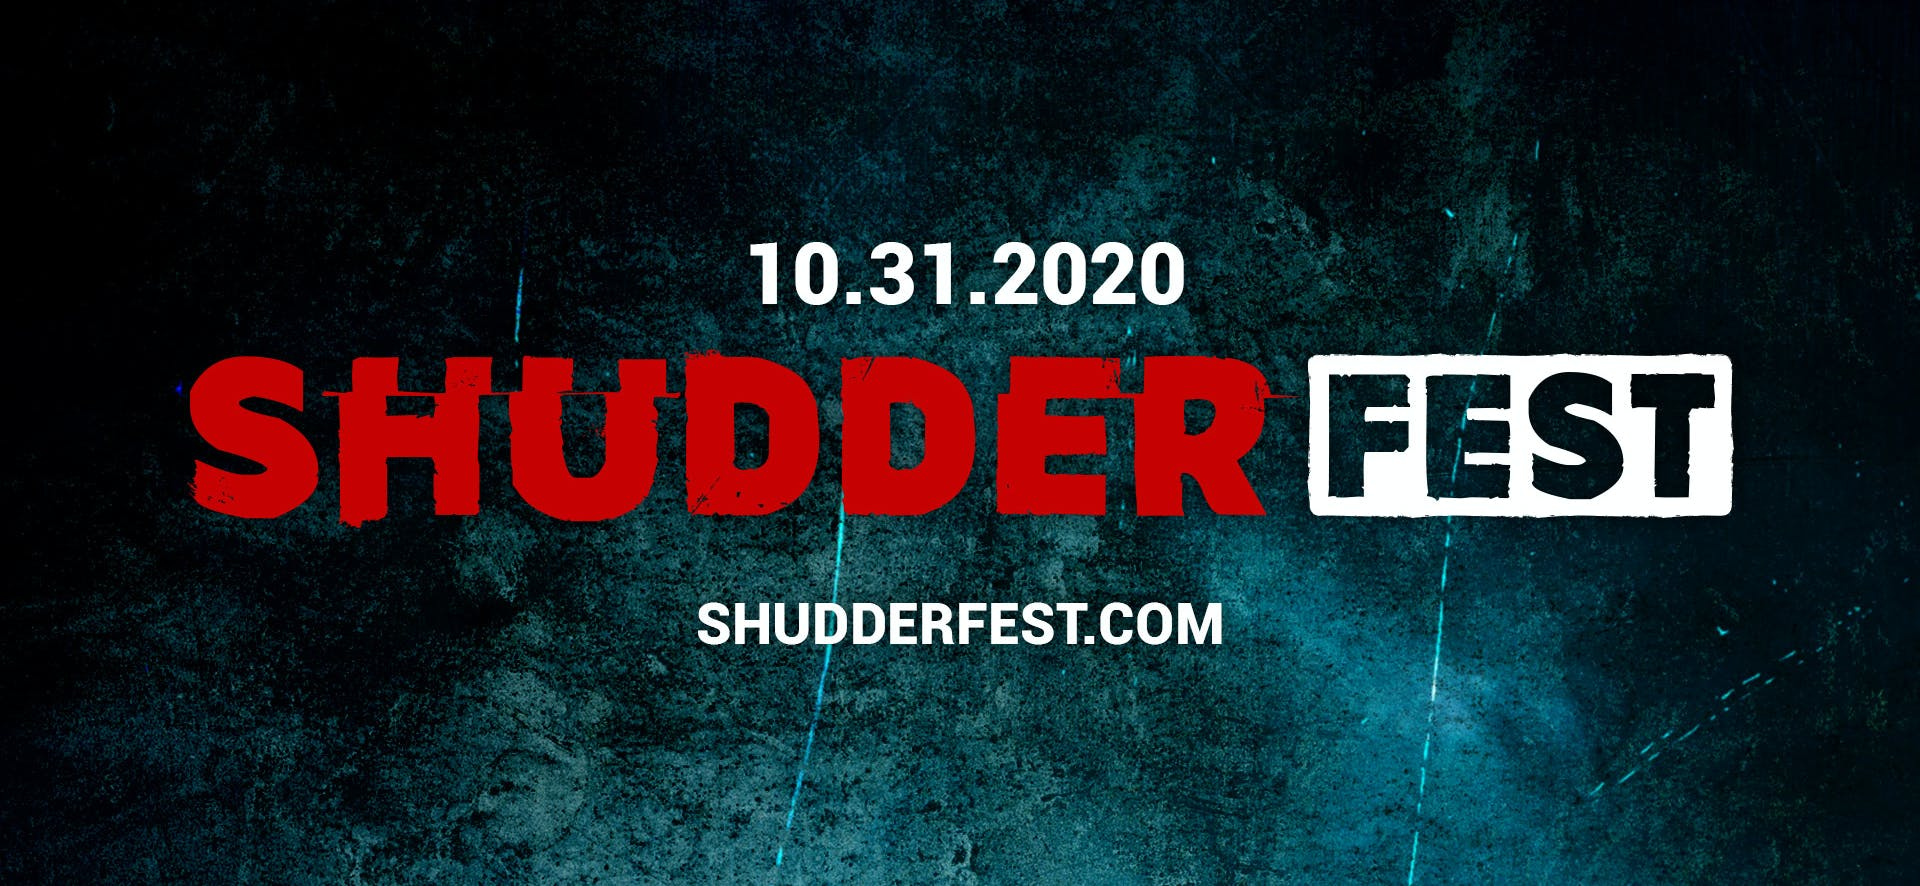 Join Us For ShudderFest This Saturday, October 31st